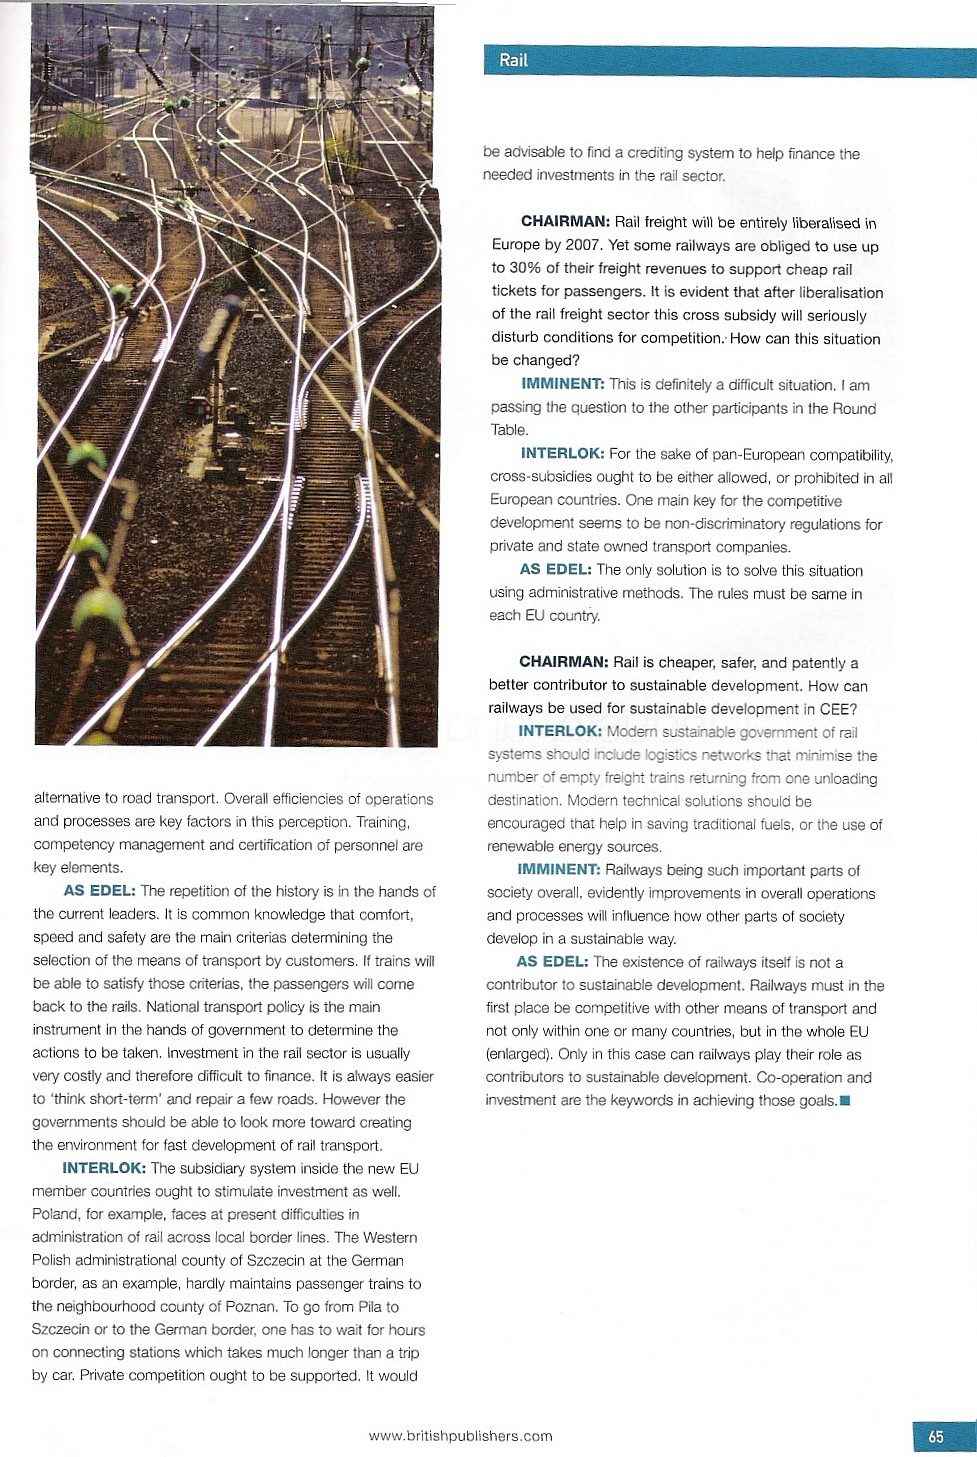 the importance of the railroads development to society